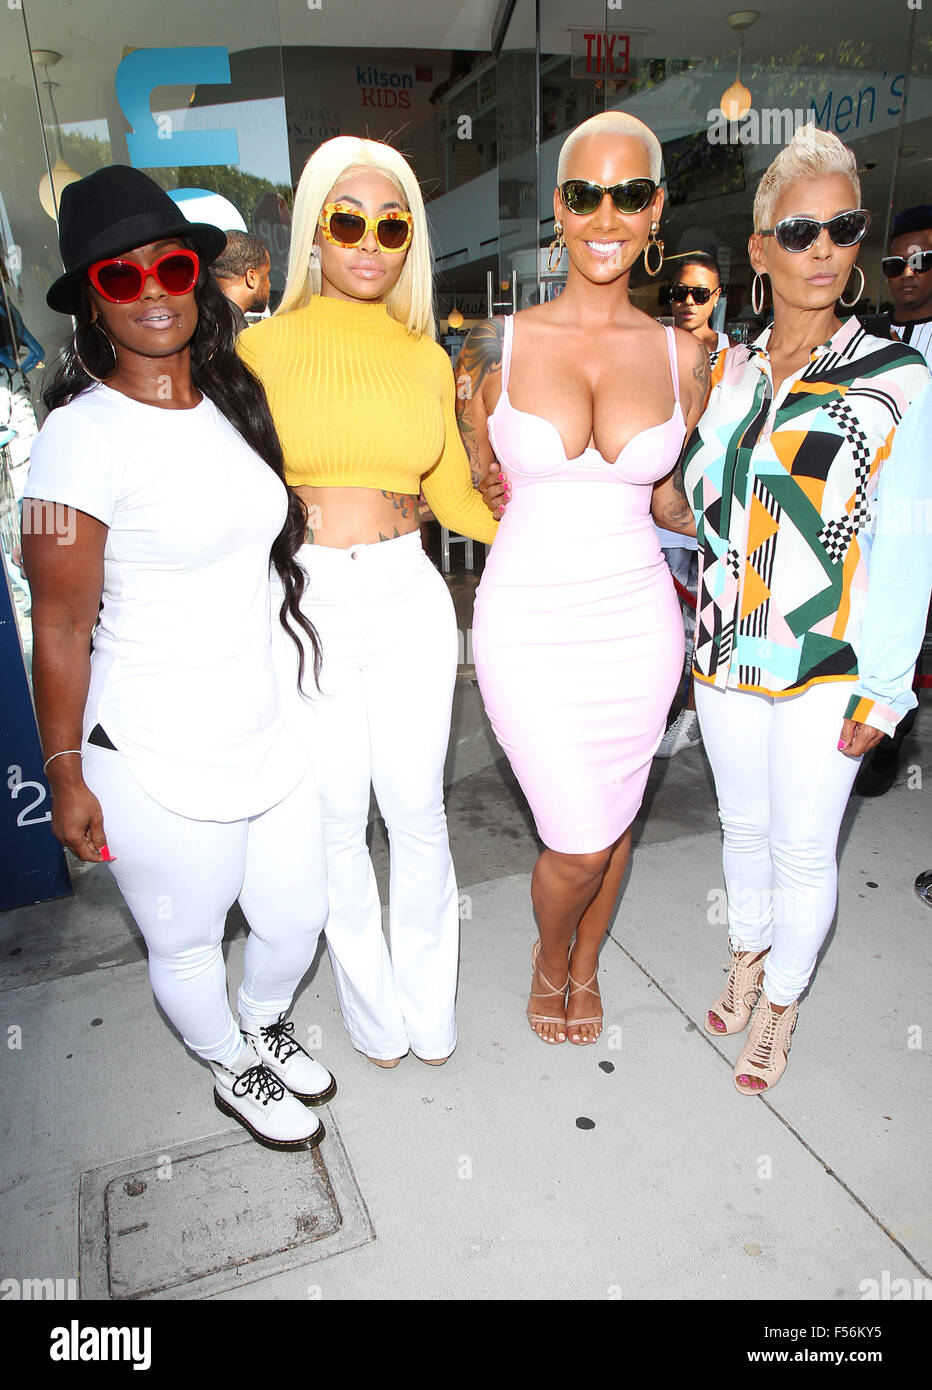 Amber Rose And Her Bff Blac Chyna Hand And Hand At Her Meet And